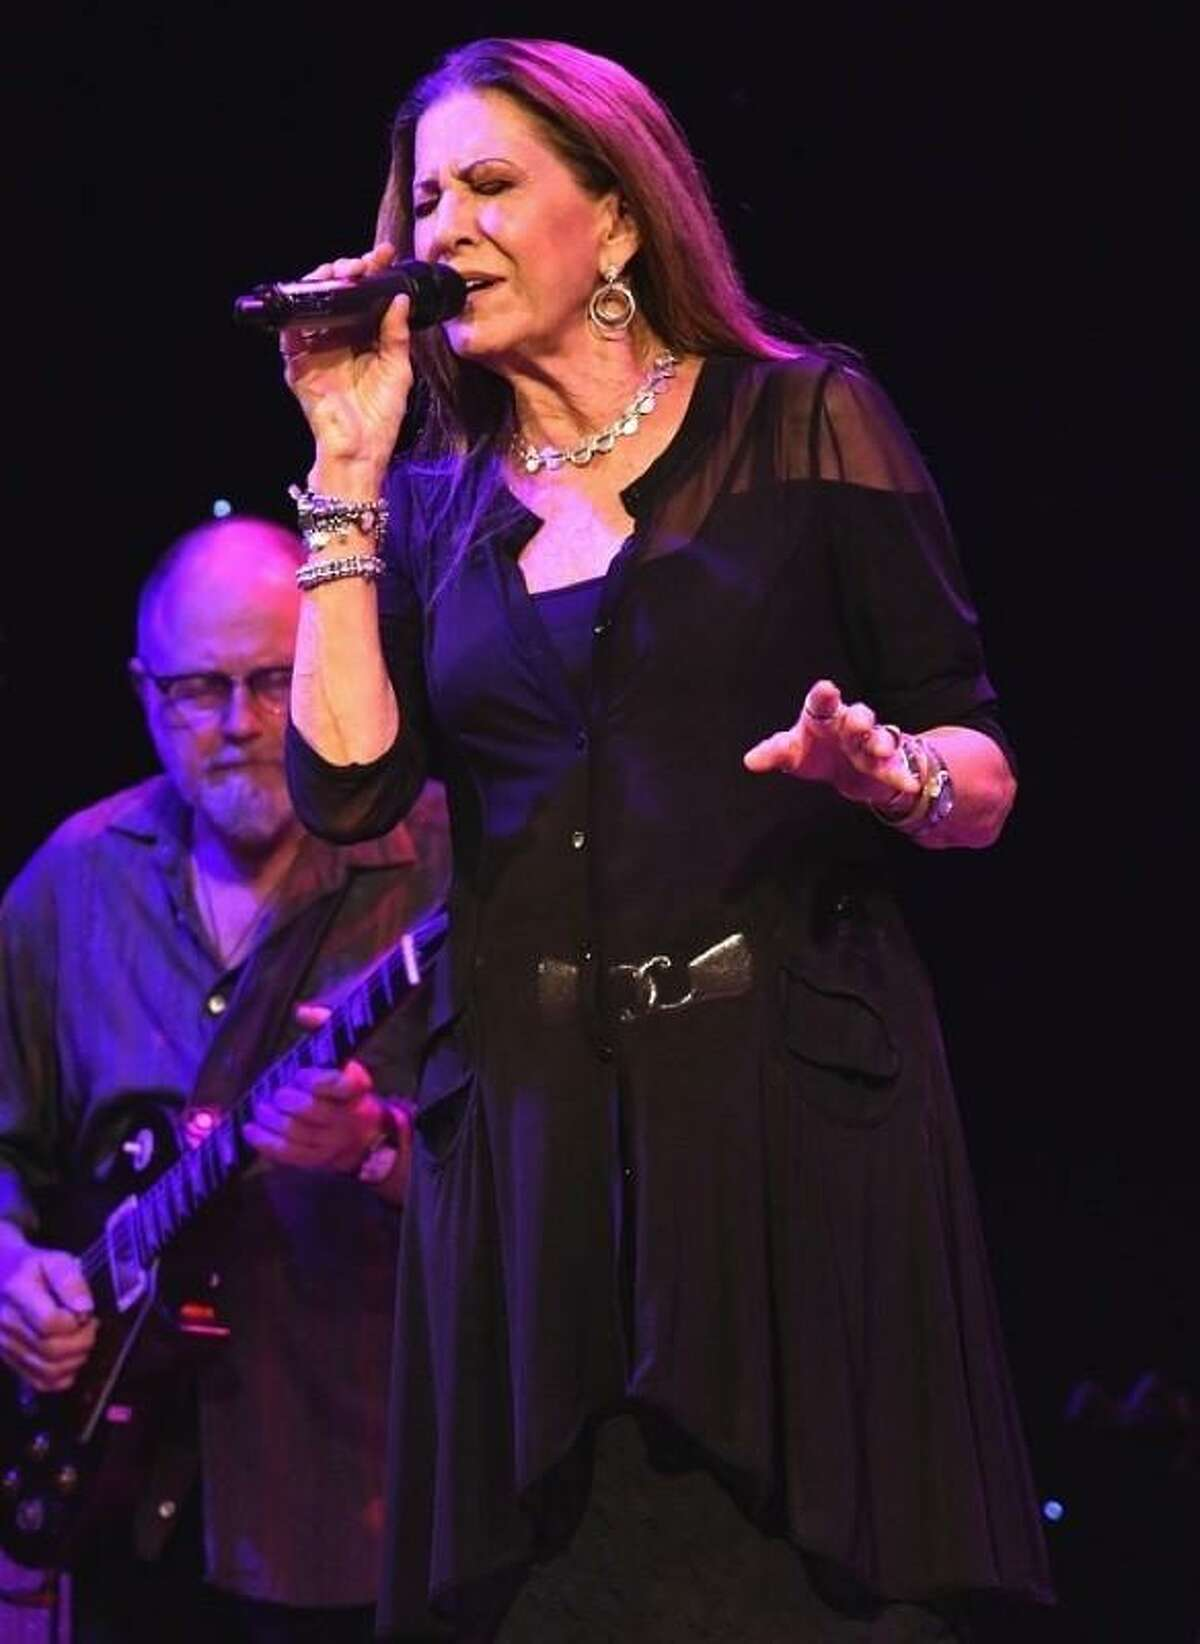 """One of music's most enduring voices and composers Rita Coolidge is shown singing with strong passion during her top shelf concert performance at the Infinity Music Hall in Hartford Sept. 13. Her show included music and stories from her near 50 year successful career. Rita is currently on tour in support of her latest album """"Safe In The Arms of Time"""". To learn more about Rita Coolidge and her new music you can visit www.ritacoolidge.net"""